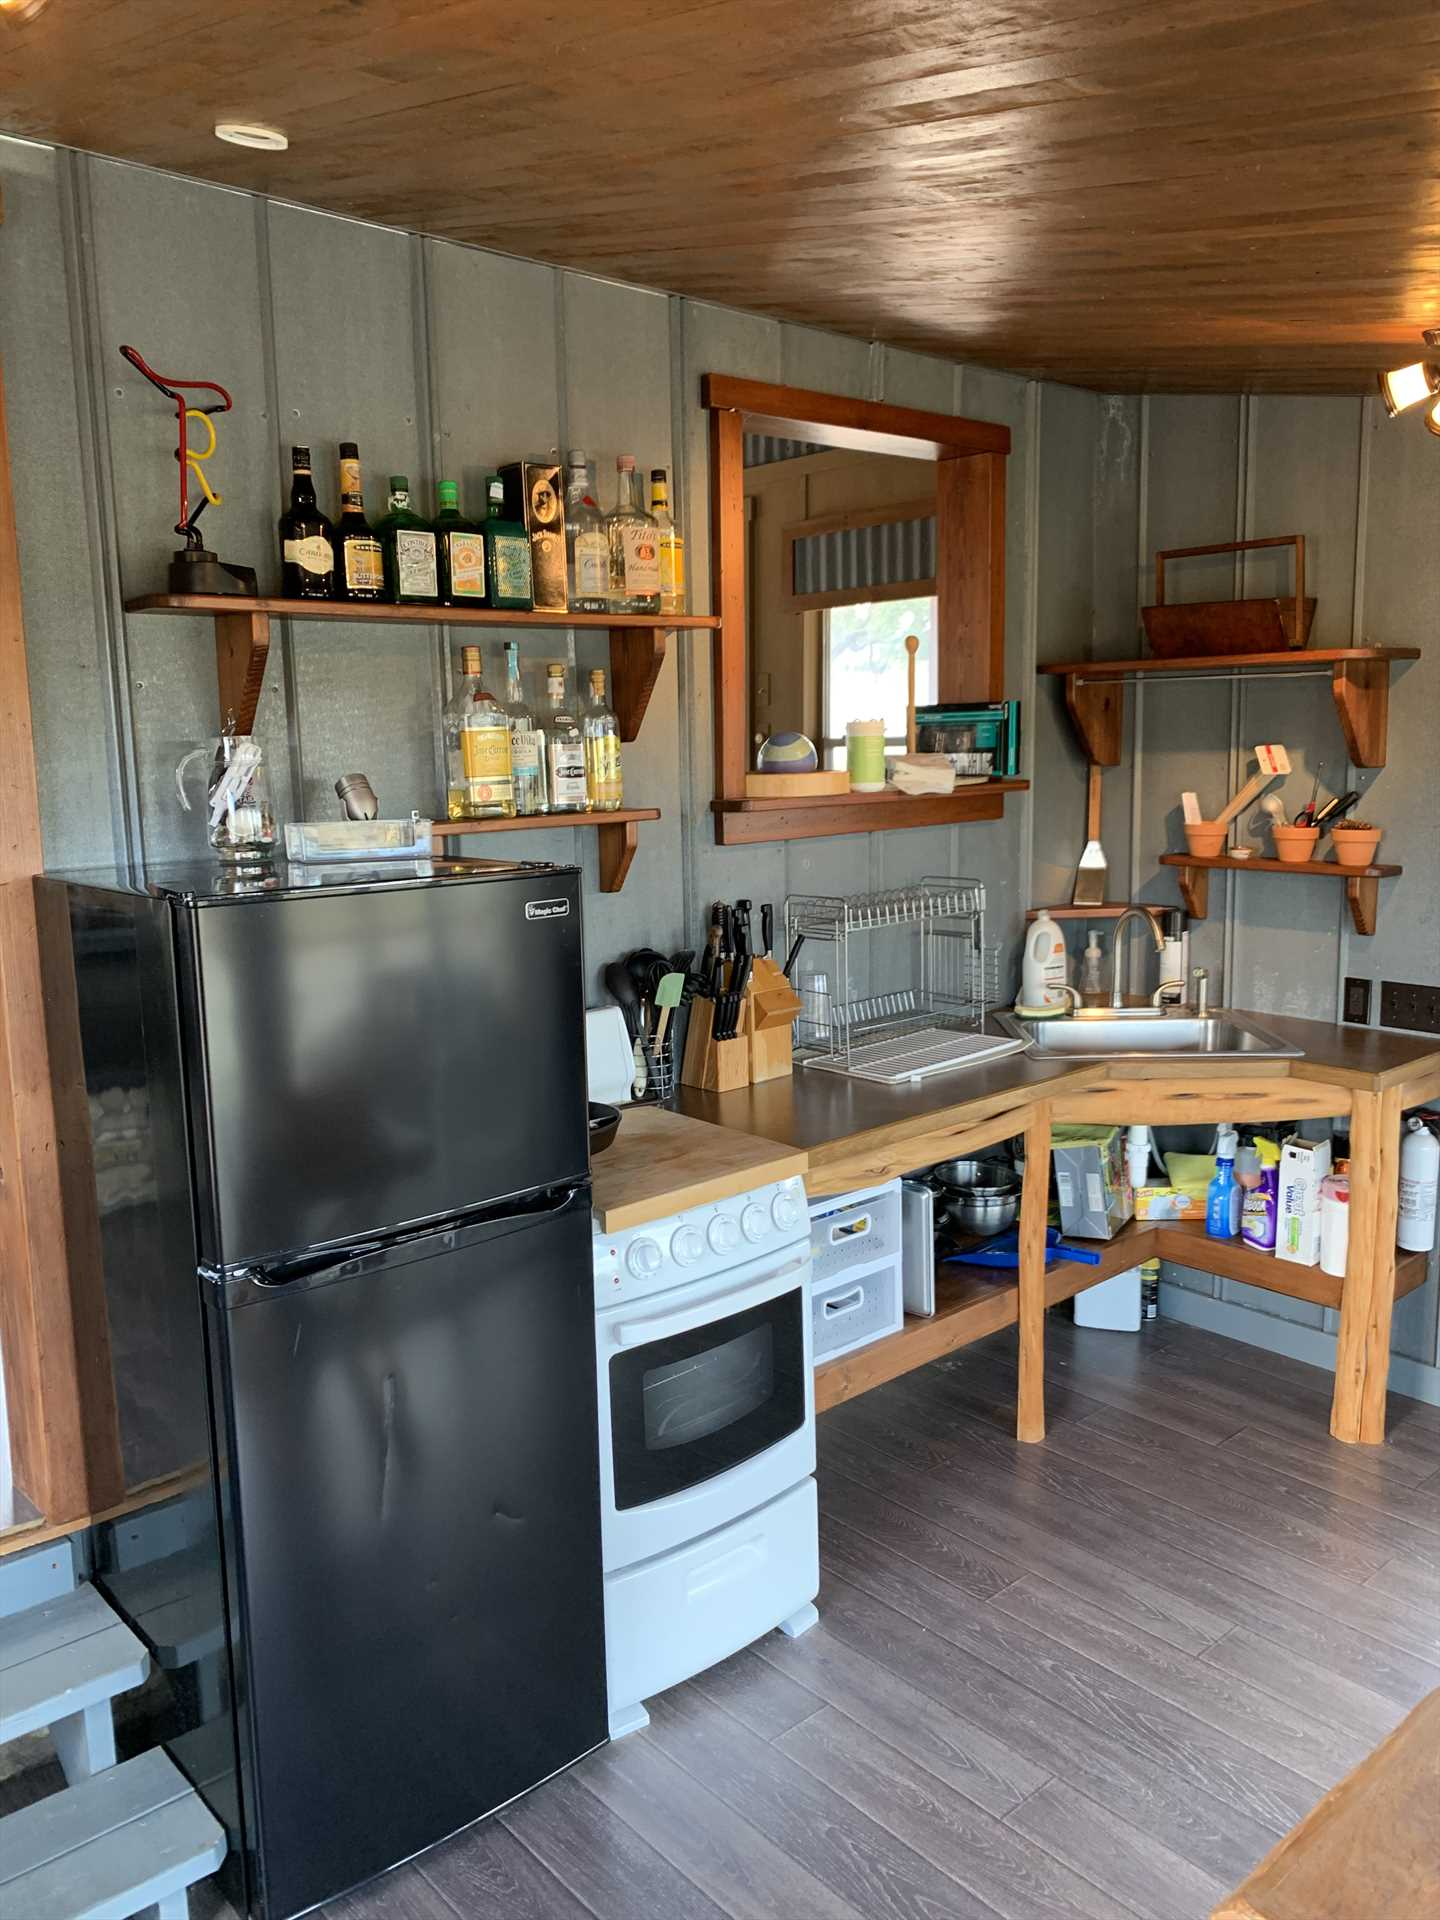 Plenty of utensils and appliances for a BBQ feast are available in the pavilion! Please help us keep this space neat, as it is shared by all our guests.